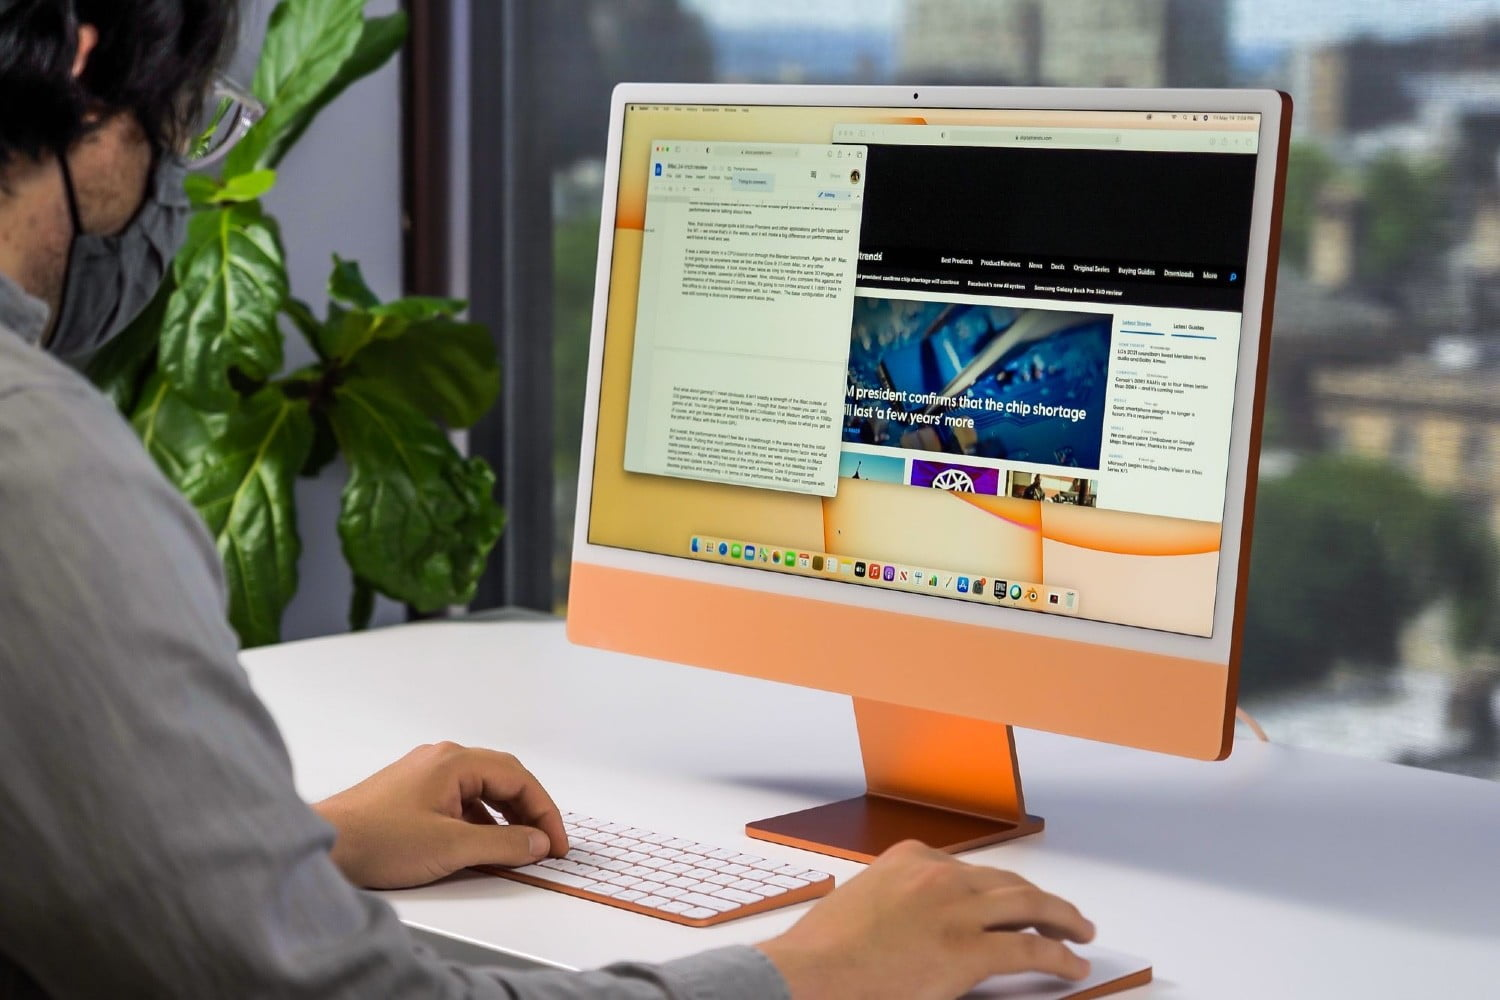 Mac usage is growing fast, but iOS still exceeds it by about 10 times